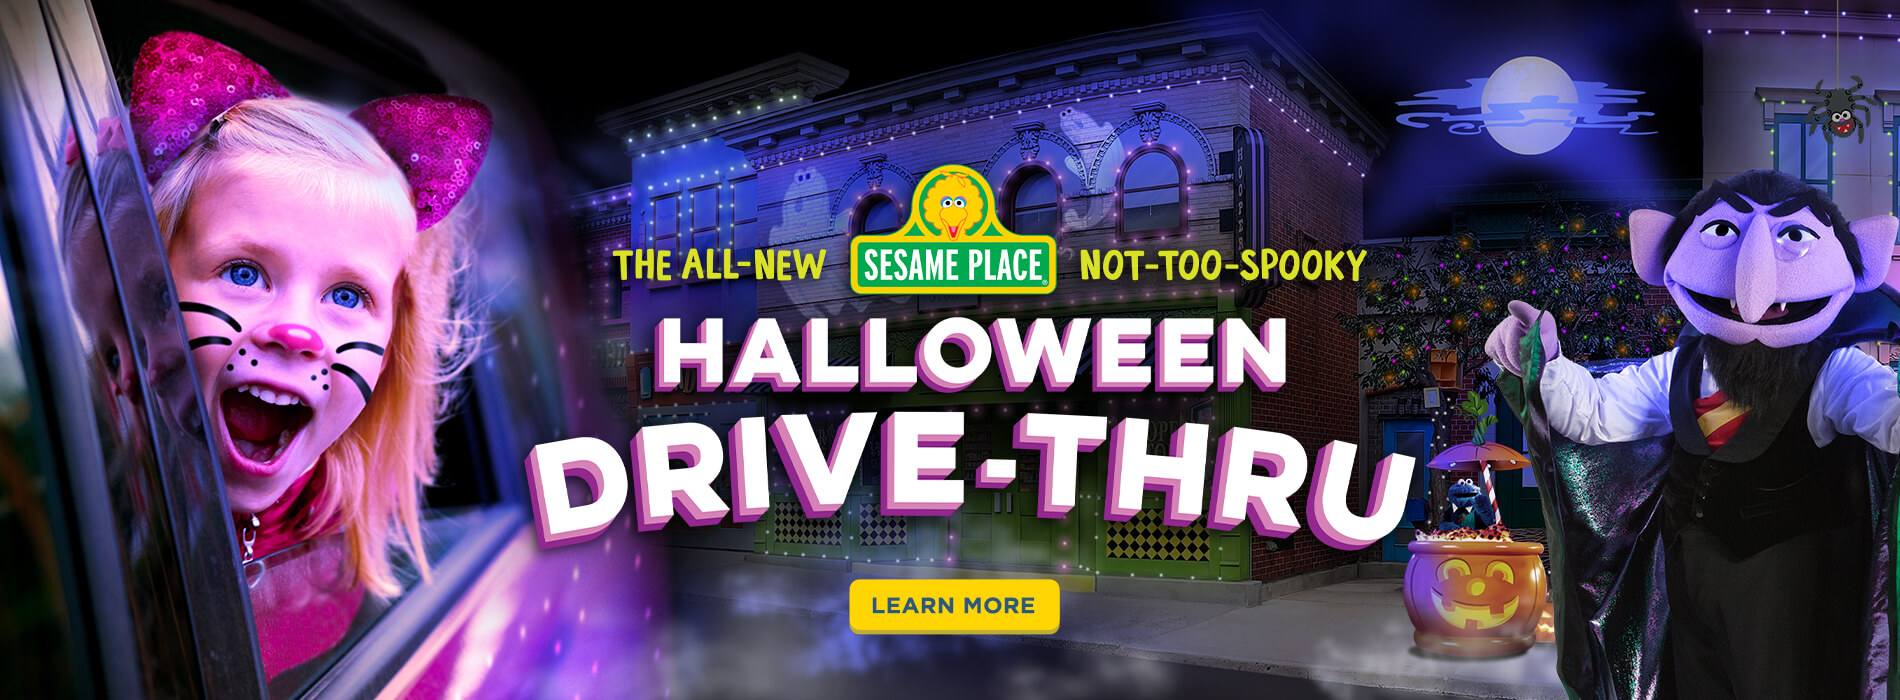 Halloween Drive-Thru Event